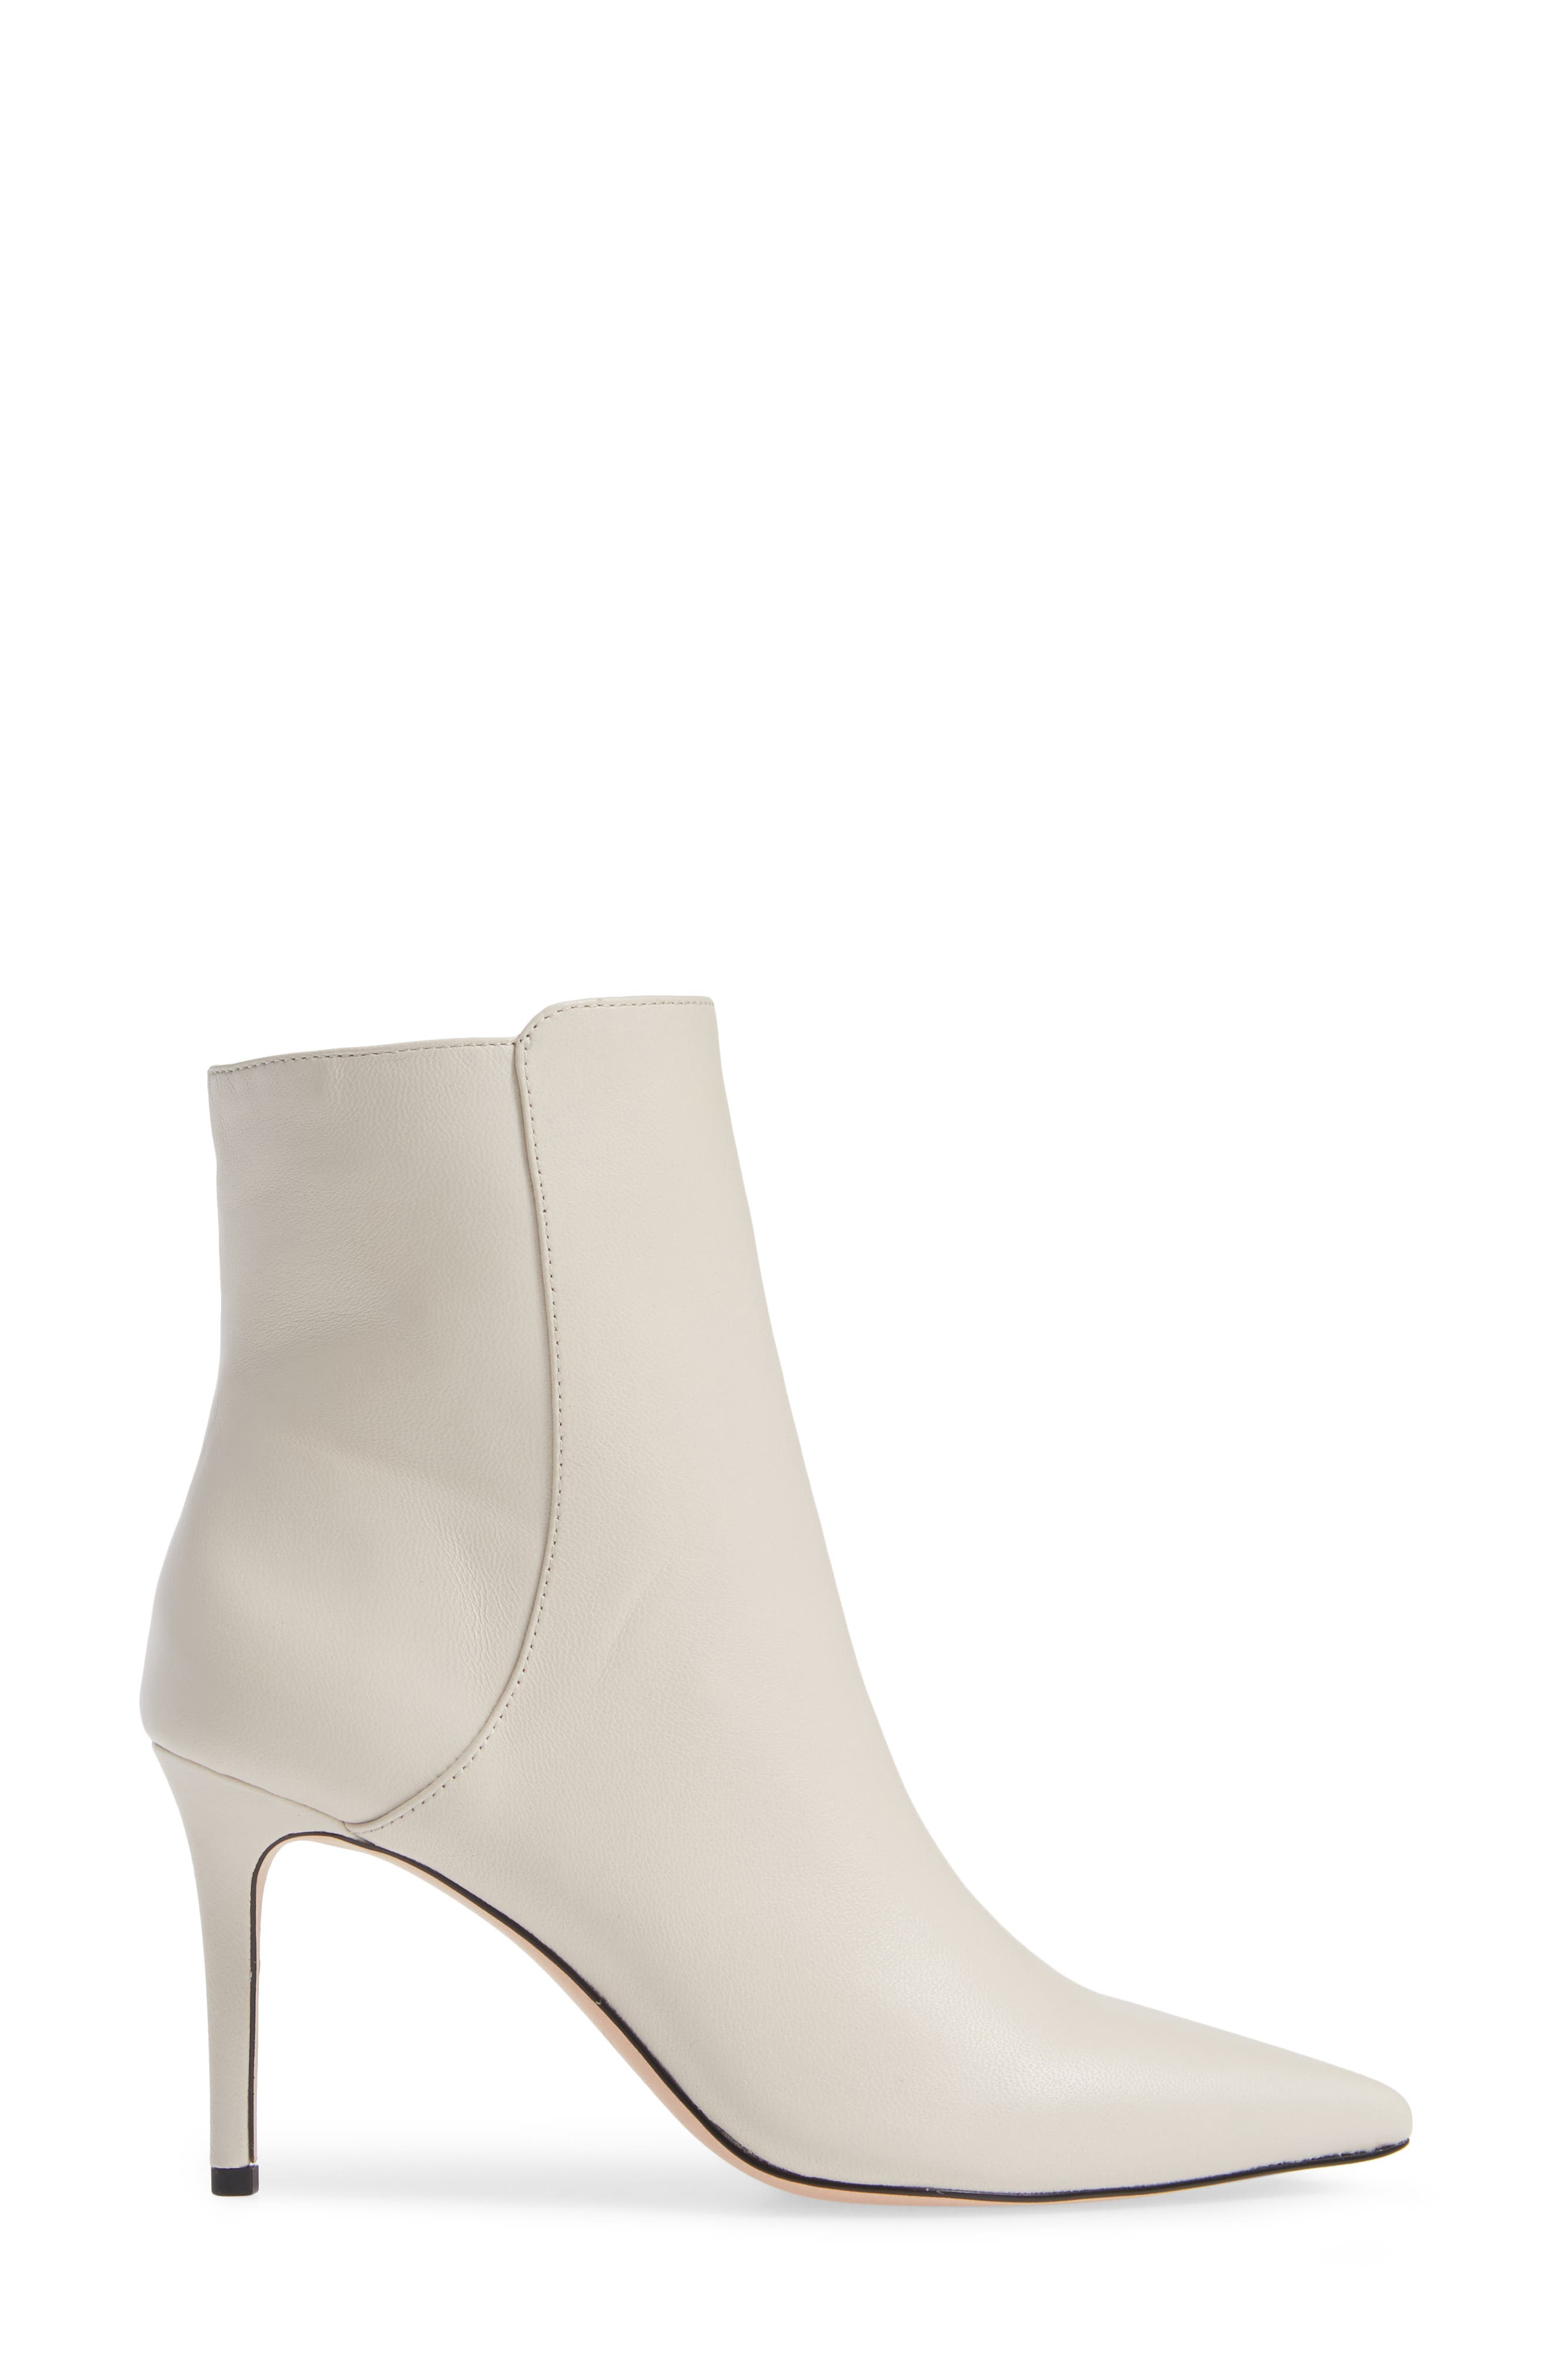 Pointed Stiletto Ankle Bootie,                             Alternate thumbnail 3, color,                             STONE LEATHER